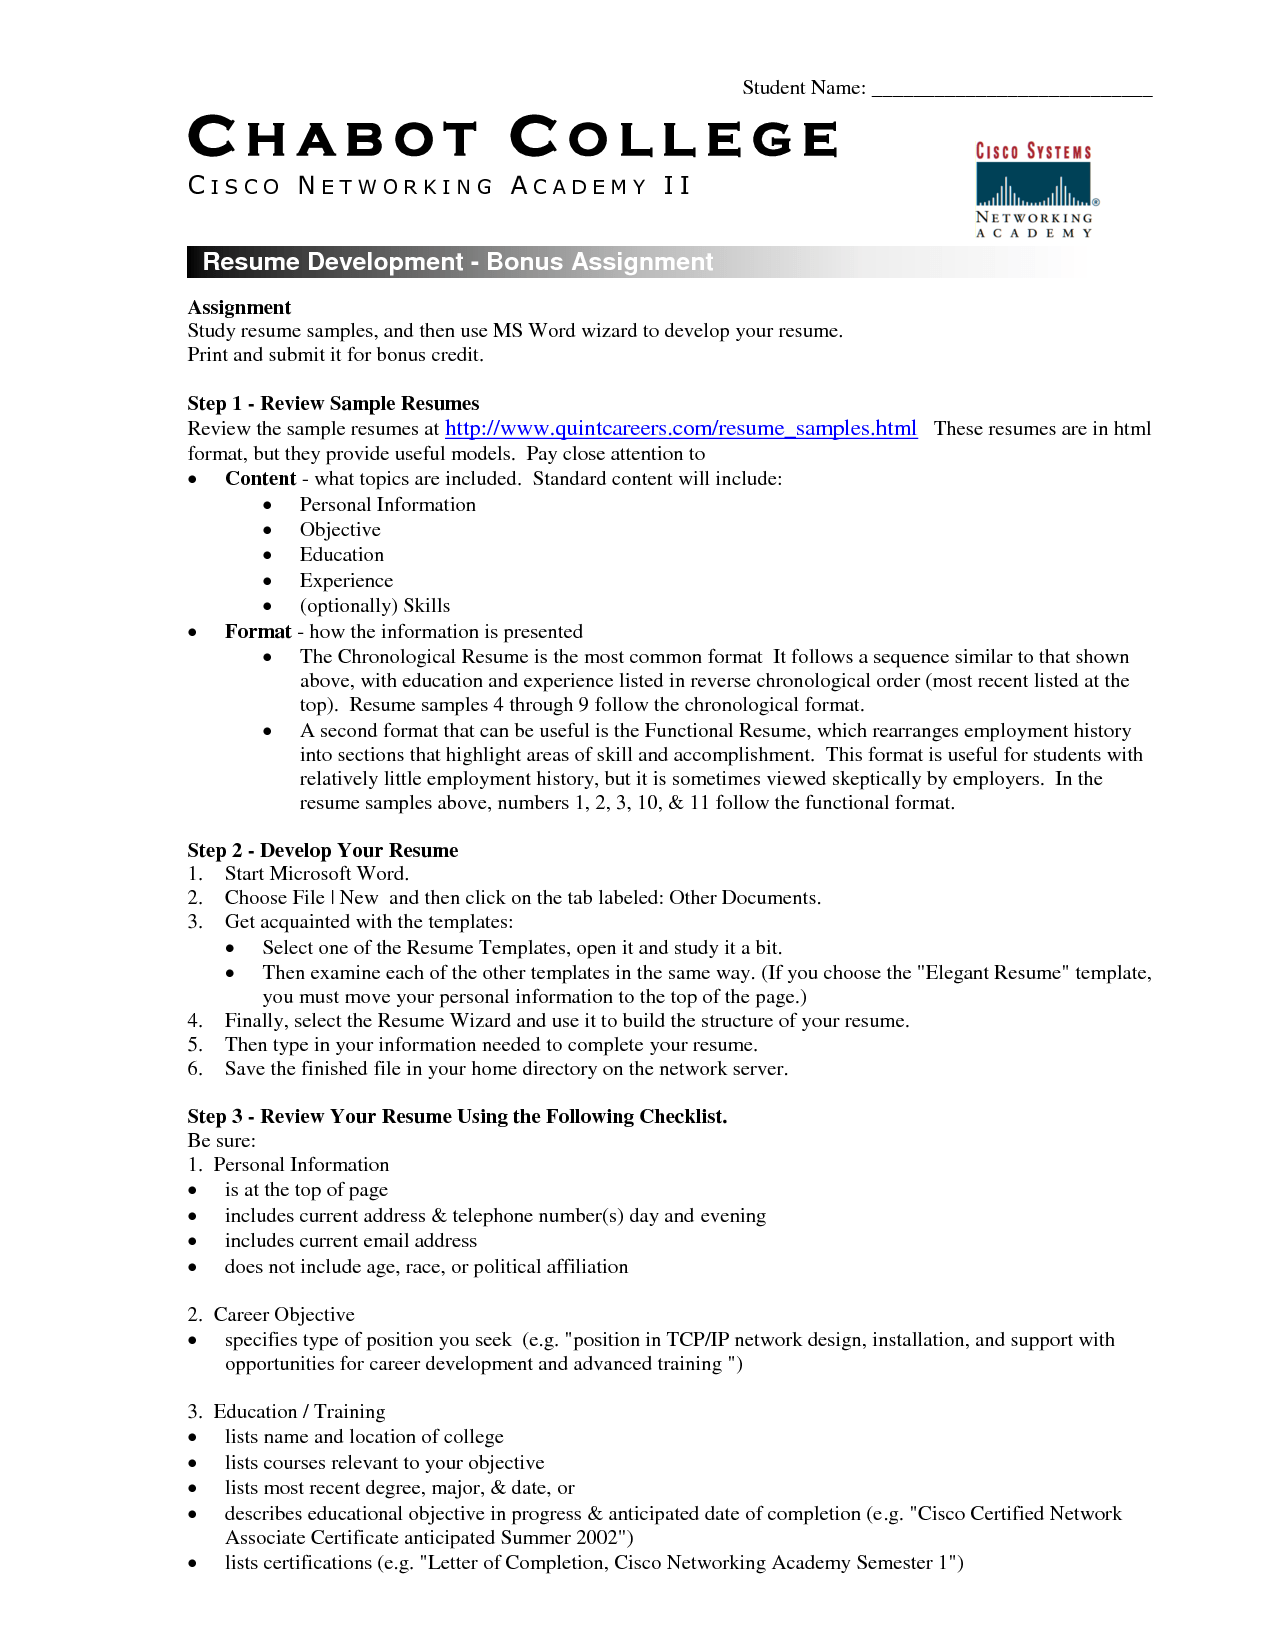 Undergraduate Resume Sample Pdf College Student Resume Template Microsoft Word Task List